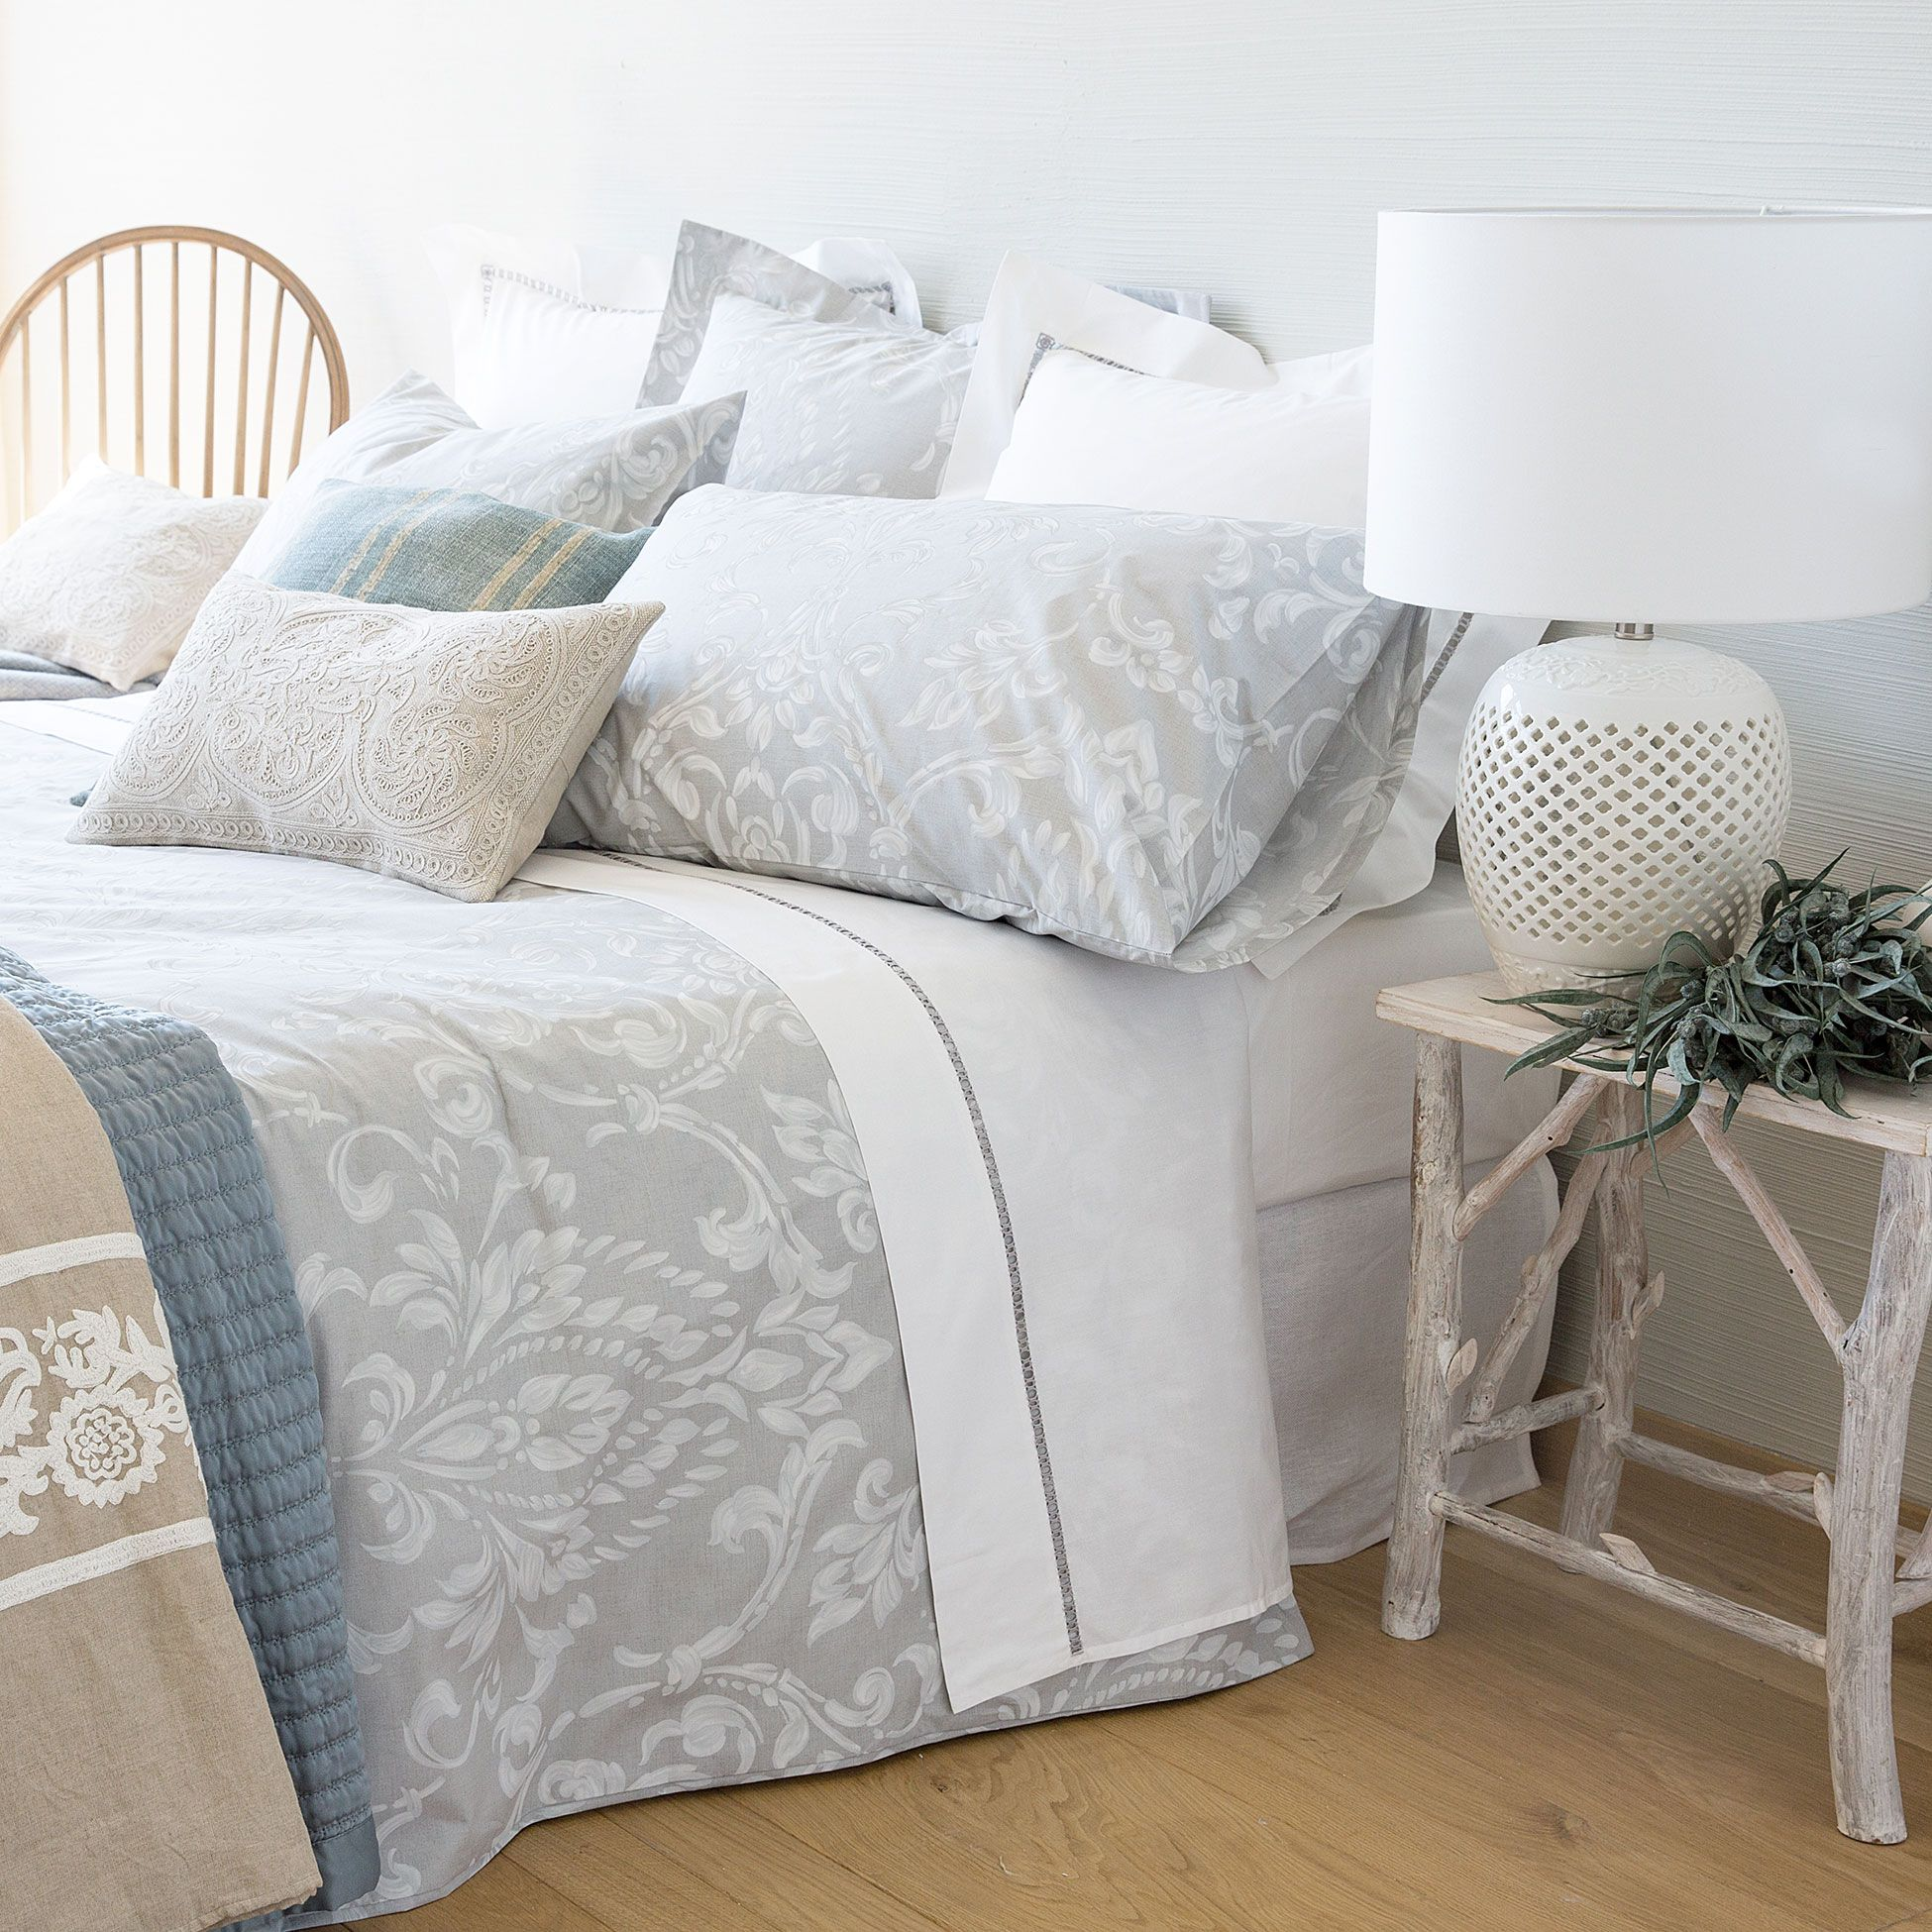 PRINTED PERCALE BED LINEN Bedding